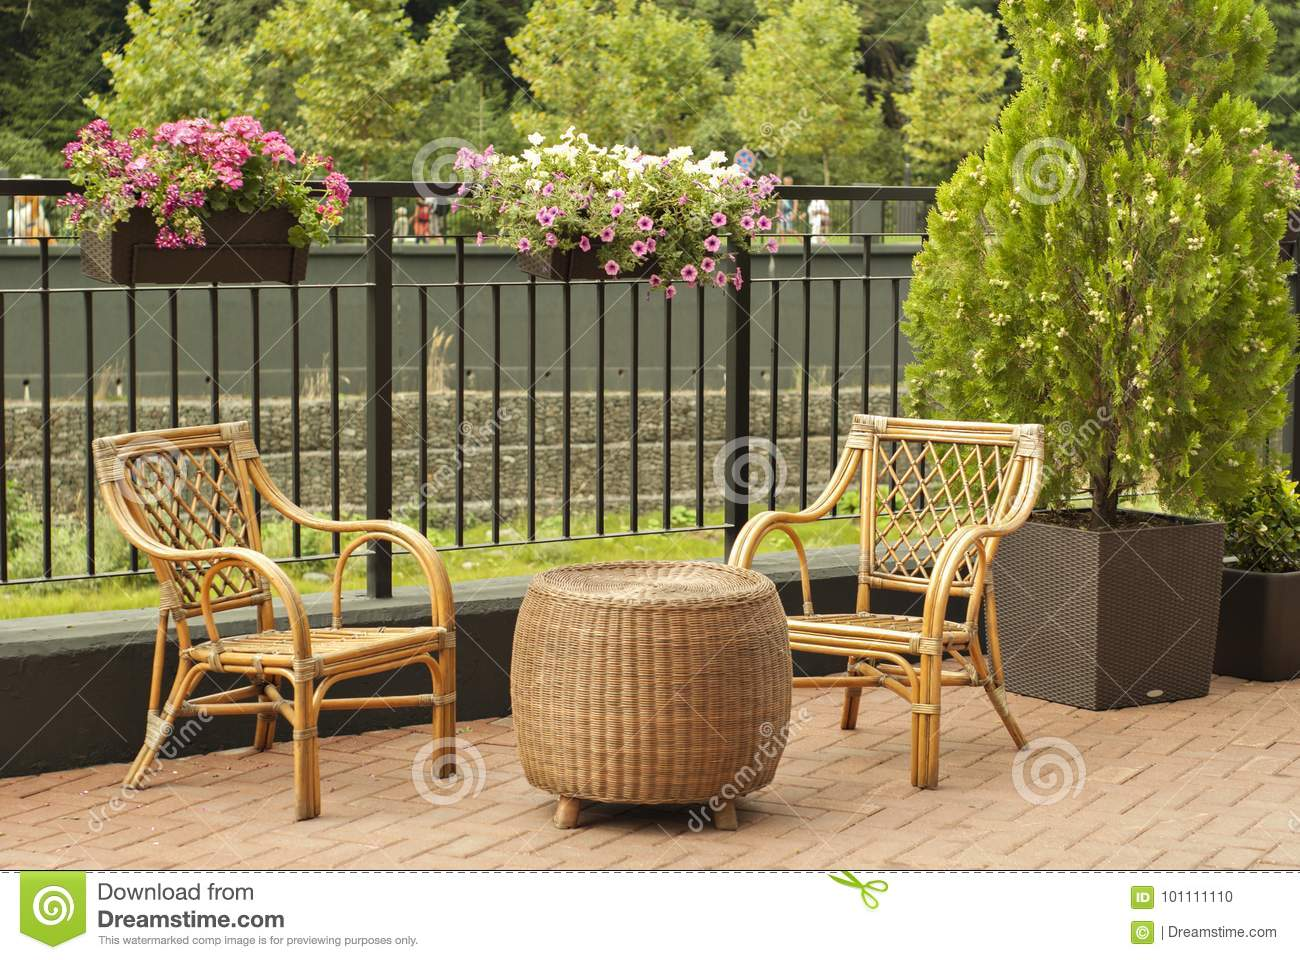 Picture of: Wicker Outdoor Furniture Stock Photo Image Of Chair 101111110